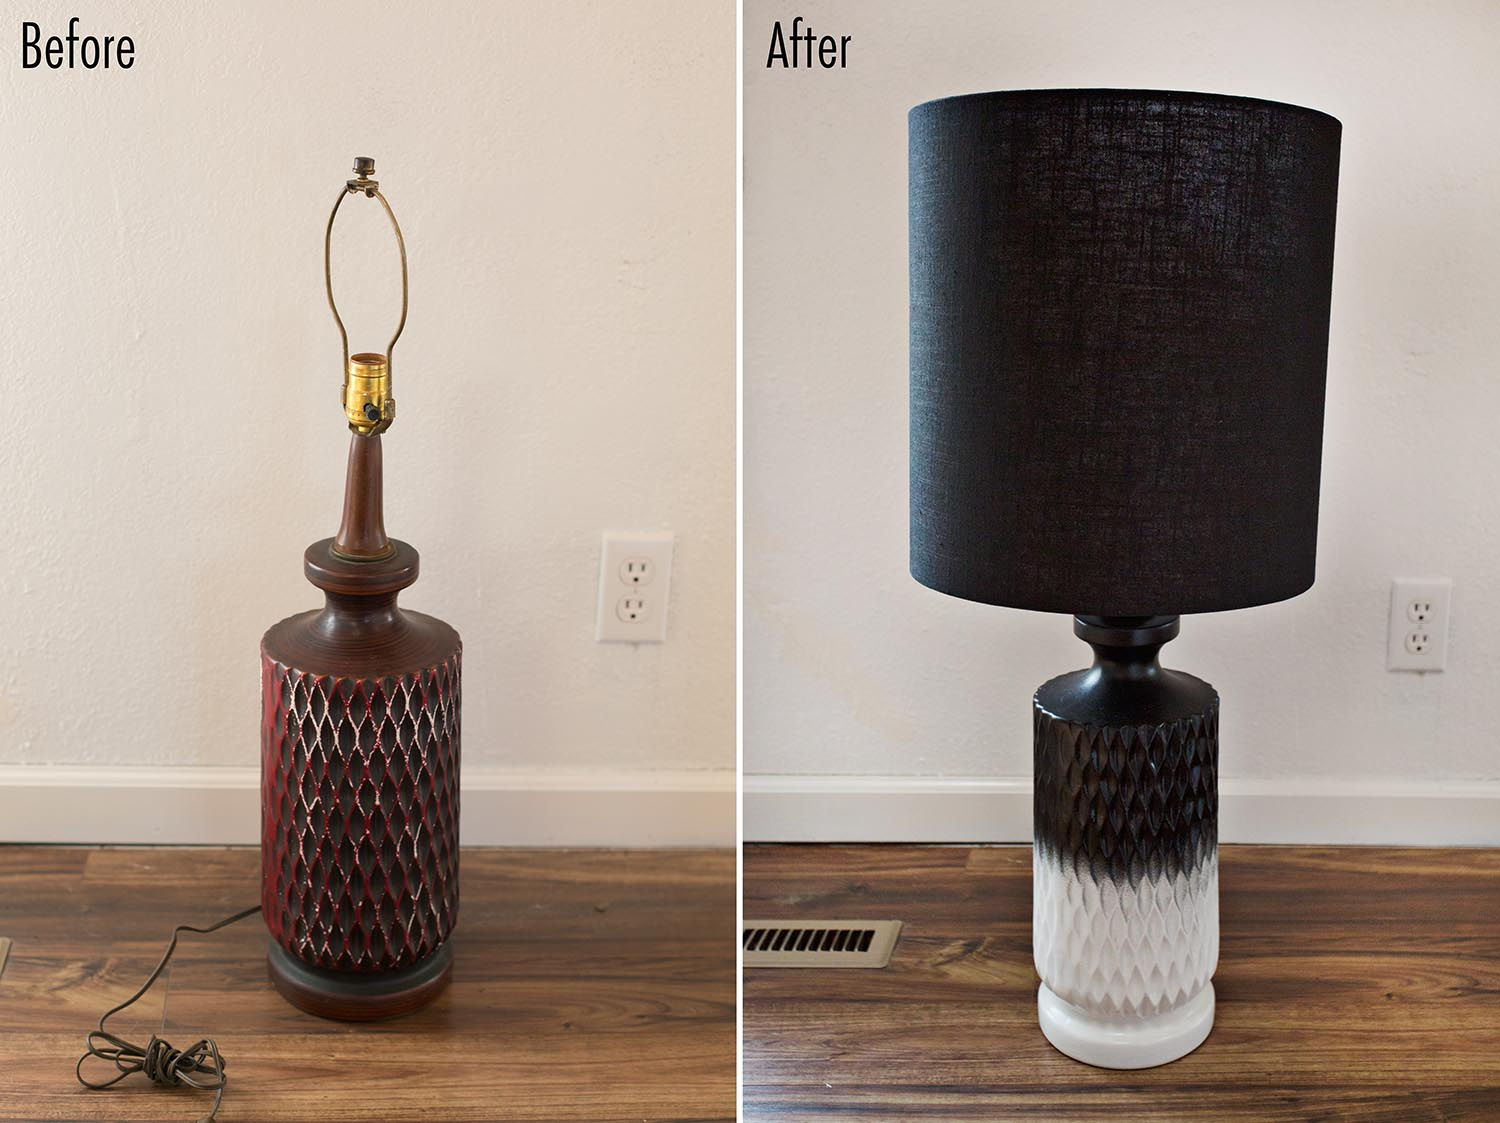 Before and after lamp restyle